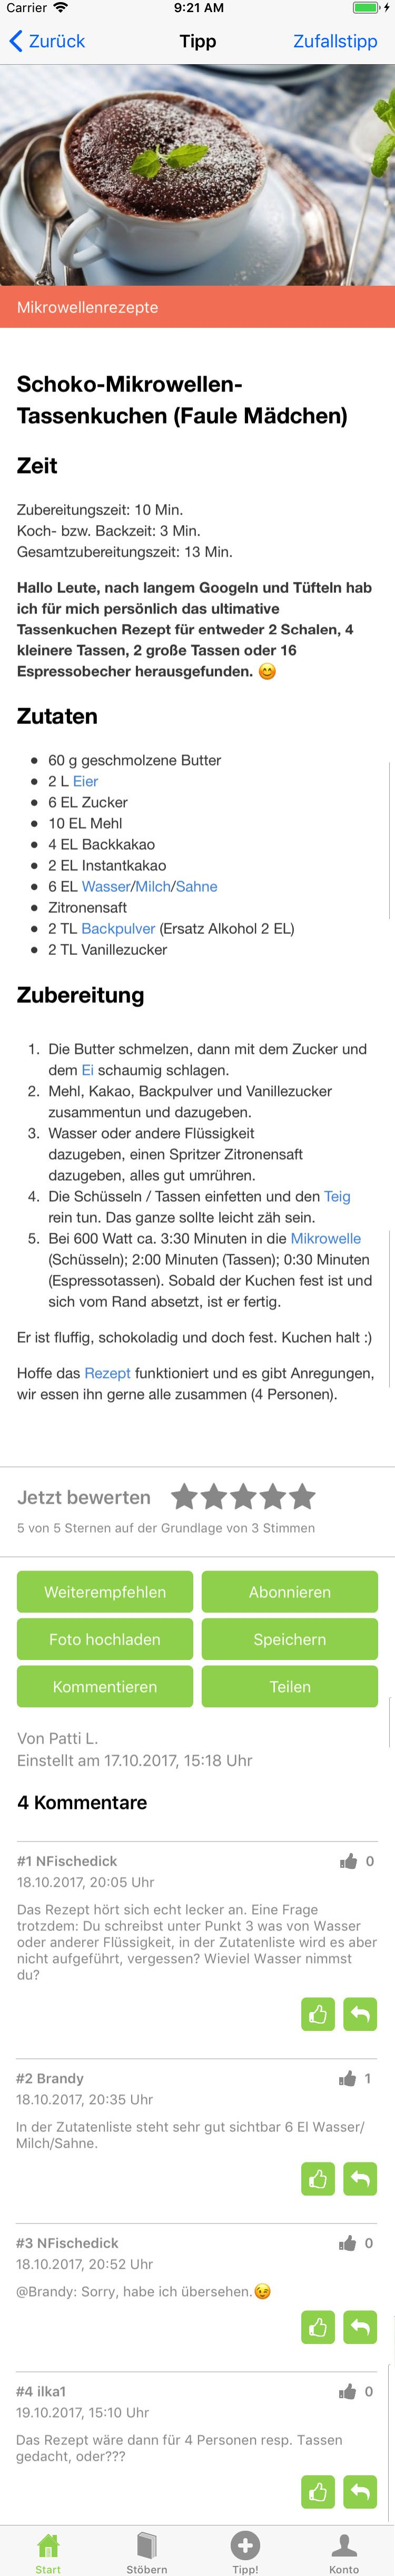 iPhone App Softwareentwicklung Ulm 6